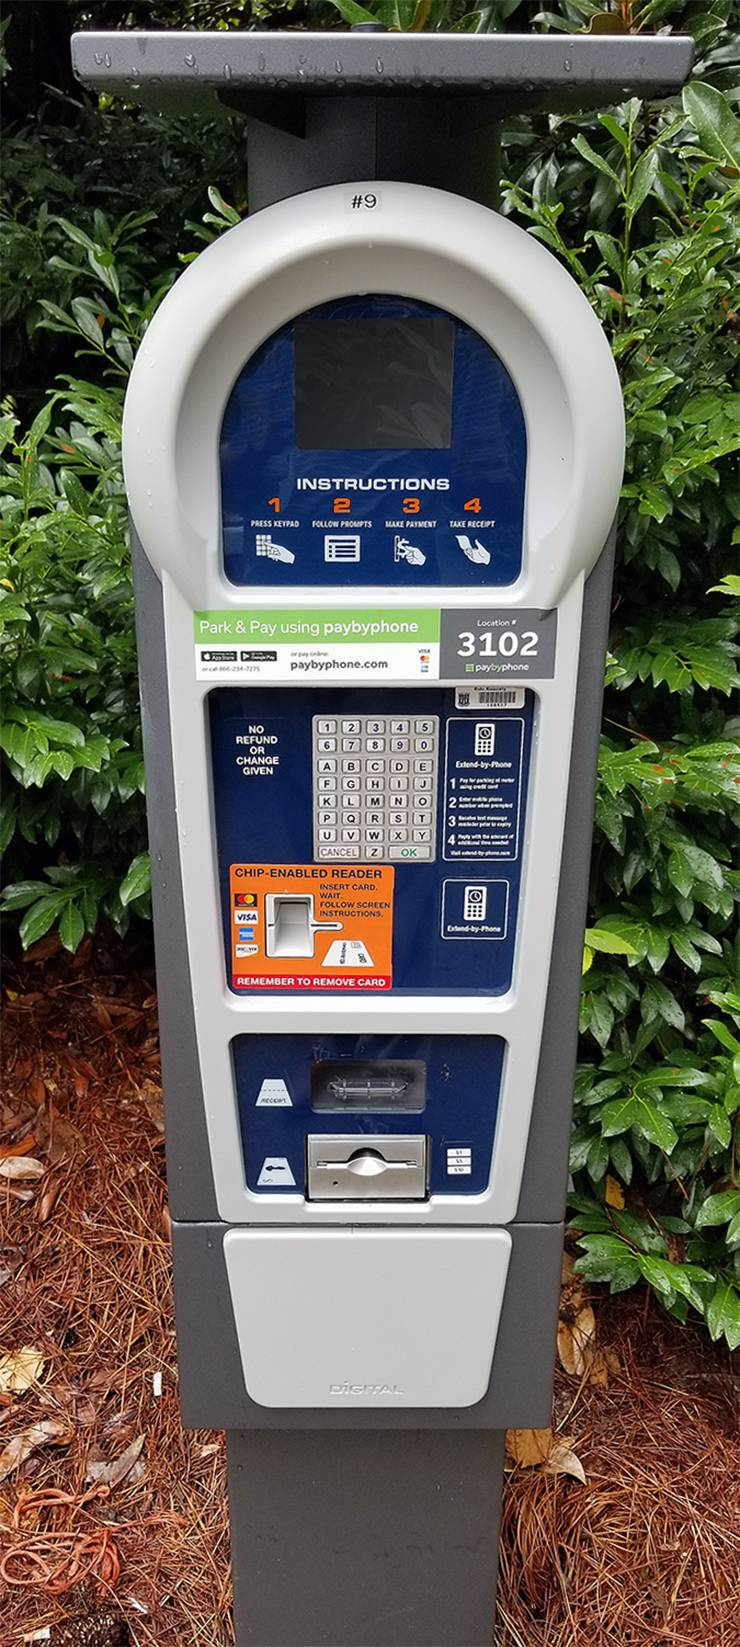 Each parking lot is assigned a designated number on meters that users enter on their phones to pay for parking.Each parking lot is assigned a designated number that users enter on their phones to pay for parking. The assigned number can be found on the pa